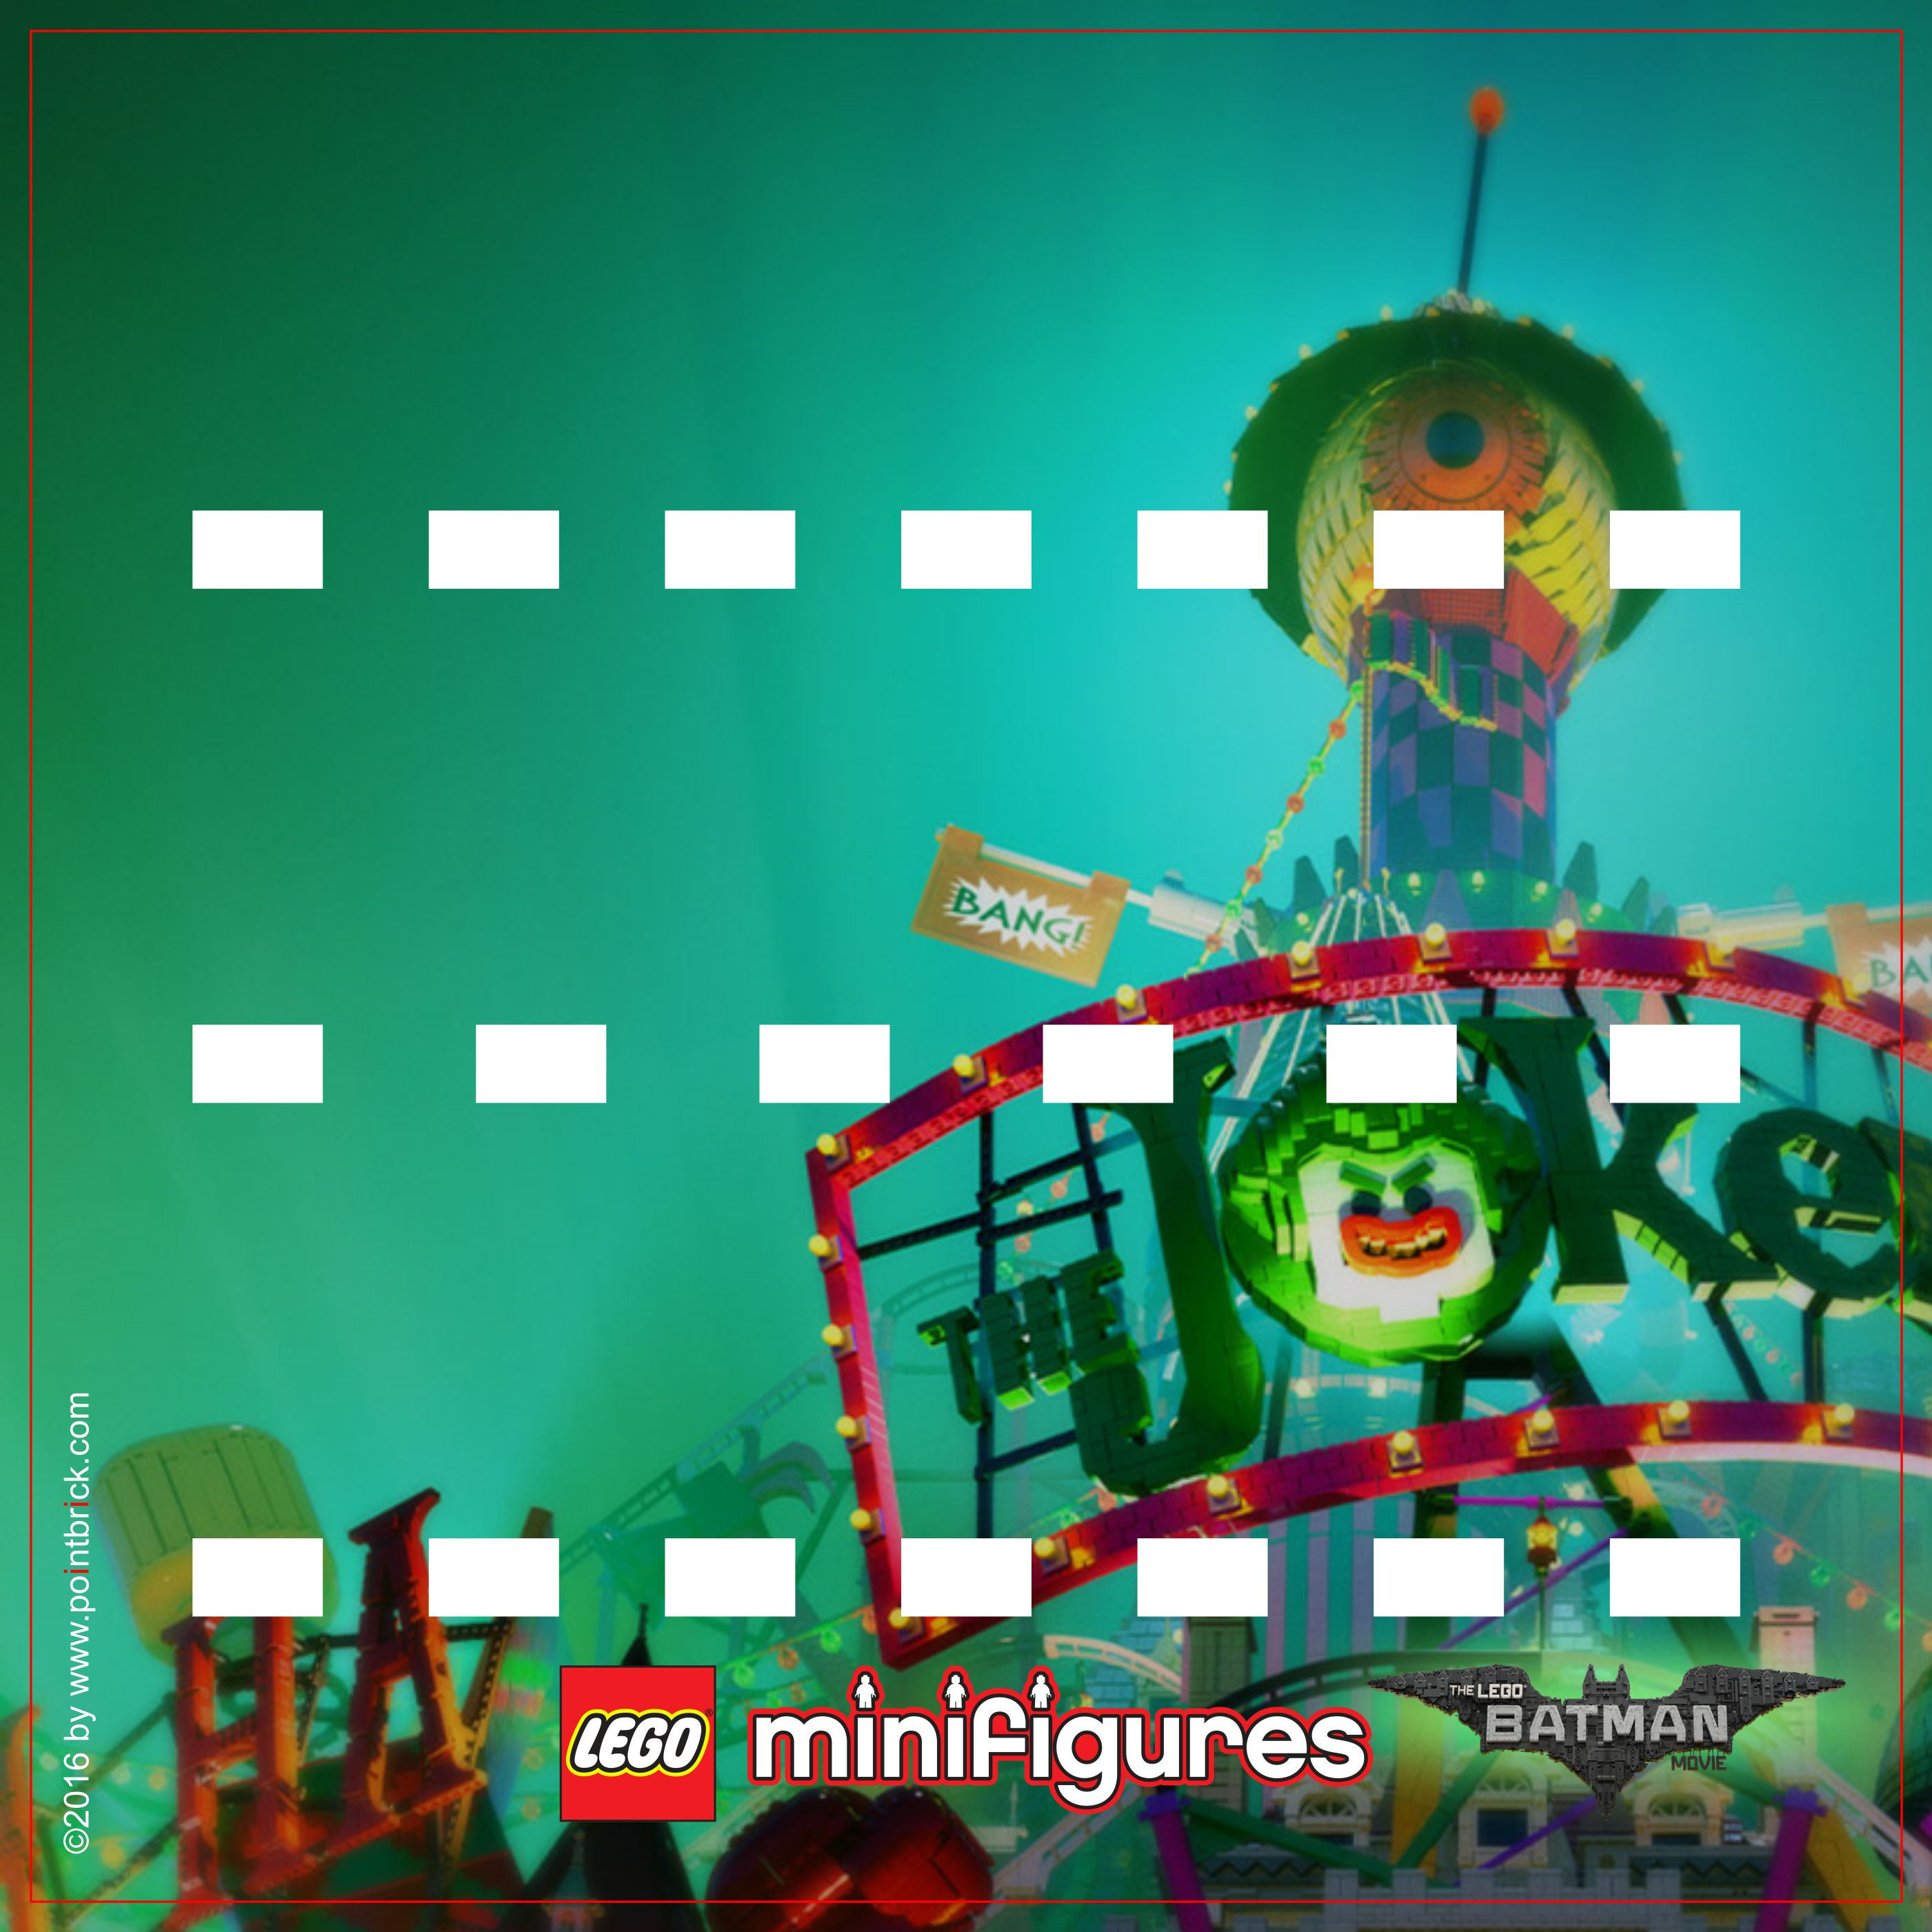 LEGO Minifigures Display: Sfondi LEGO BATMAN MOVIE | Plantas